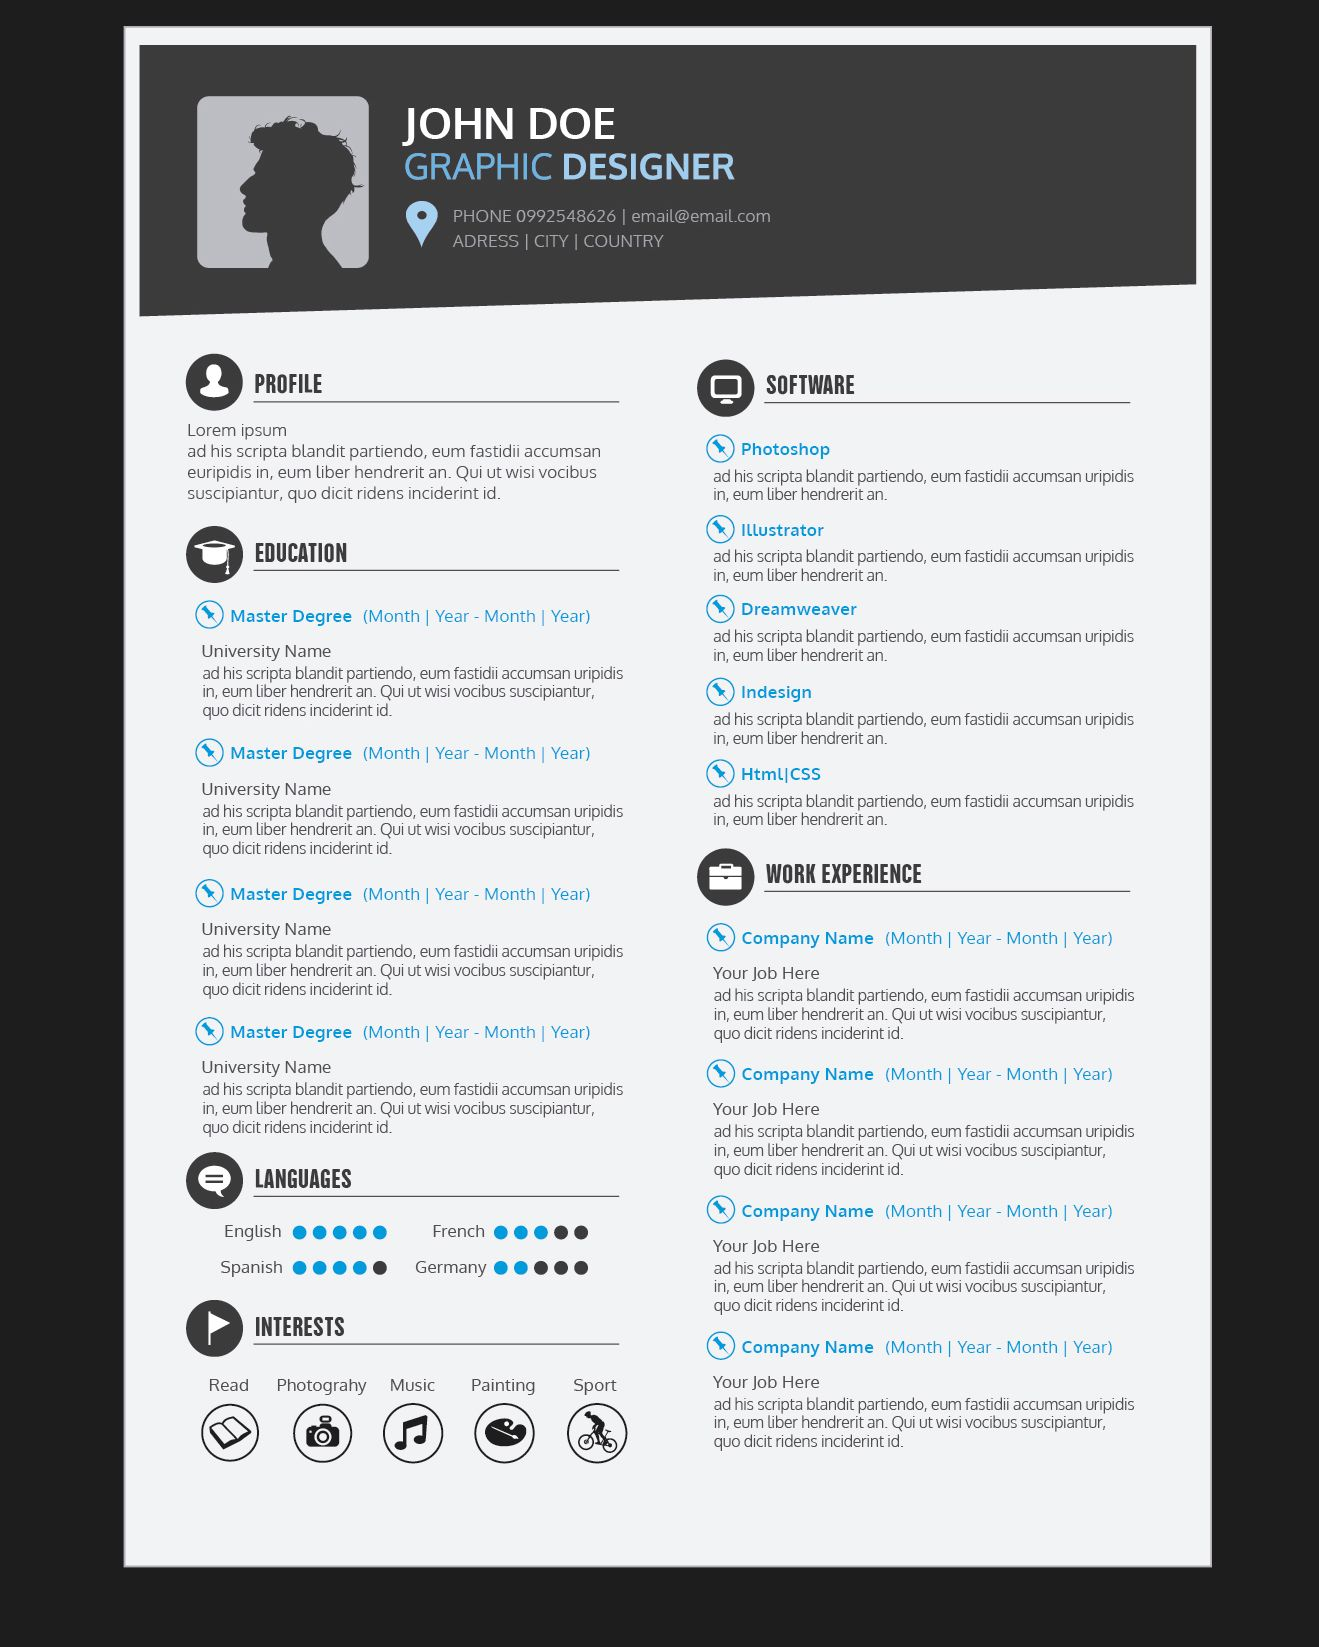 Graphic Designer Resume CV. Download Large Image 1319x1647px. License  Image; User  Graphic Designers Resume